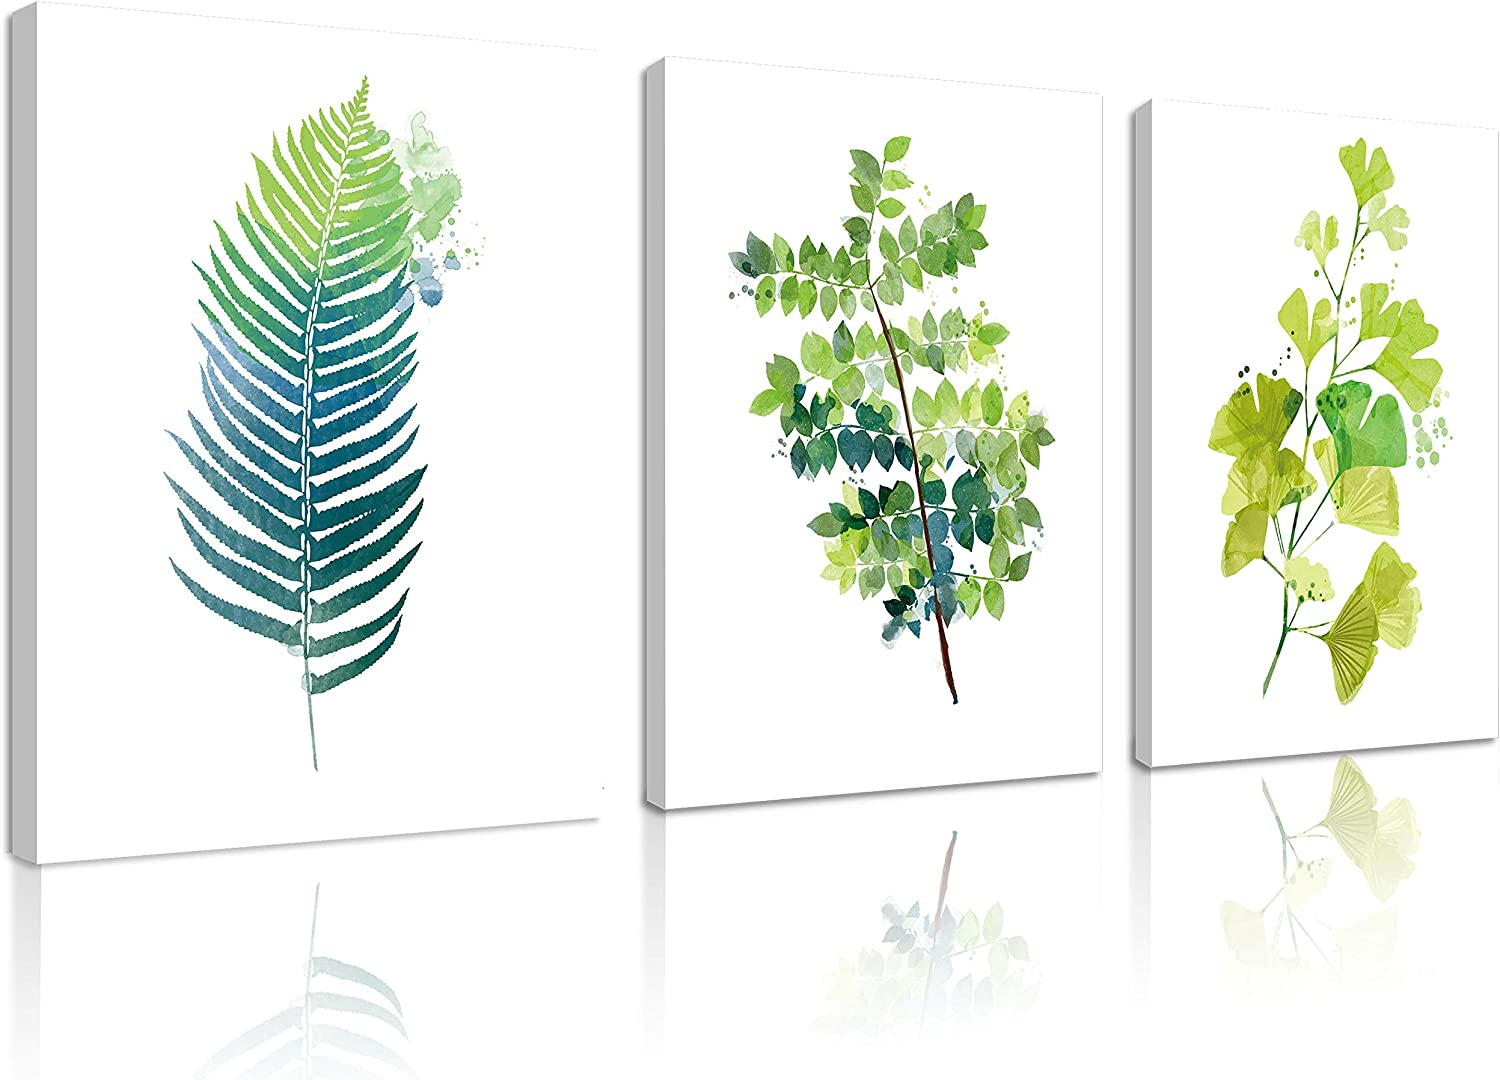 Natural art 3 Panels Wall Art Contemporary Simple Green Leaf Painting Wall Art Decor Framed Canvas Prints Small Tropical Plants Watercolor Giclee Ready to Hang Home Office Decor Gift 12x16inches